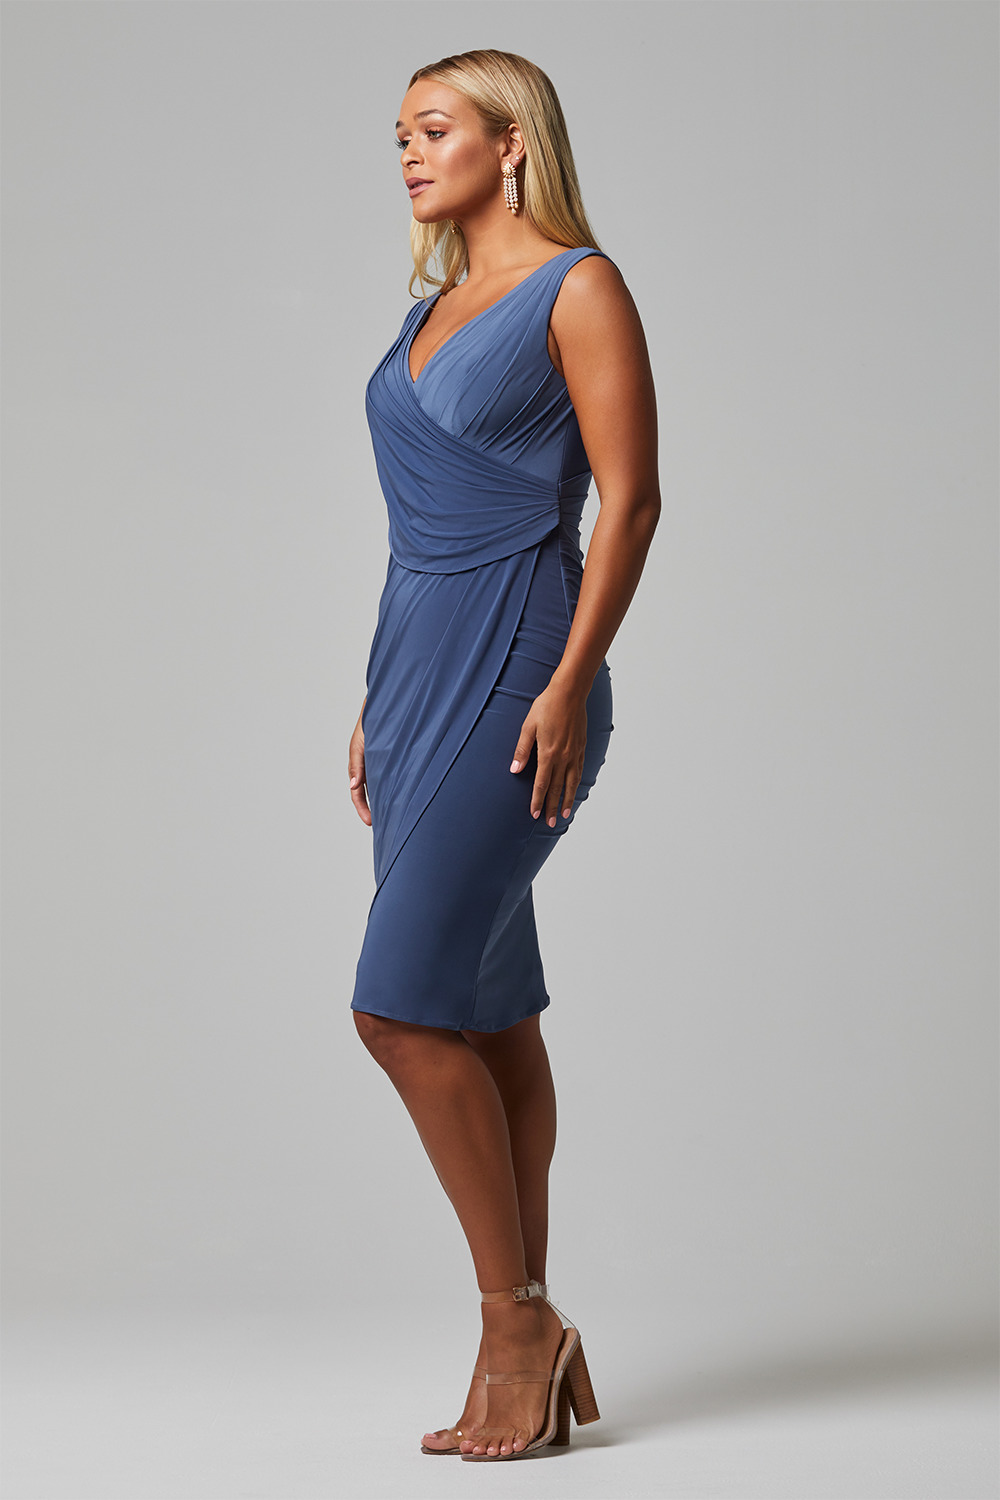 TO826 delta bridesmaid dress side